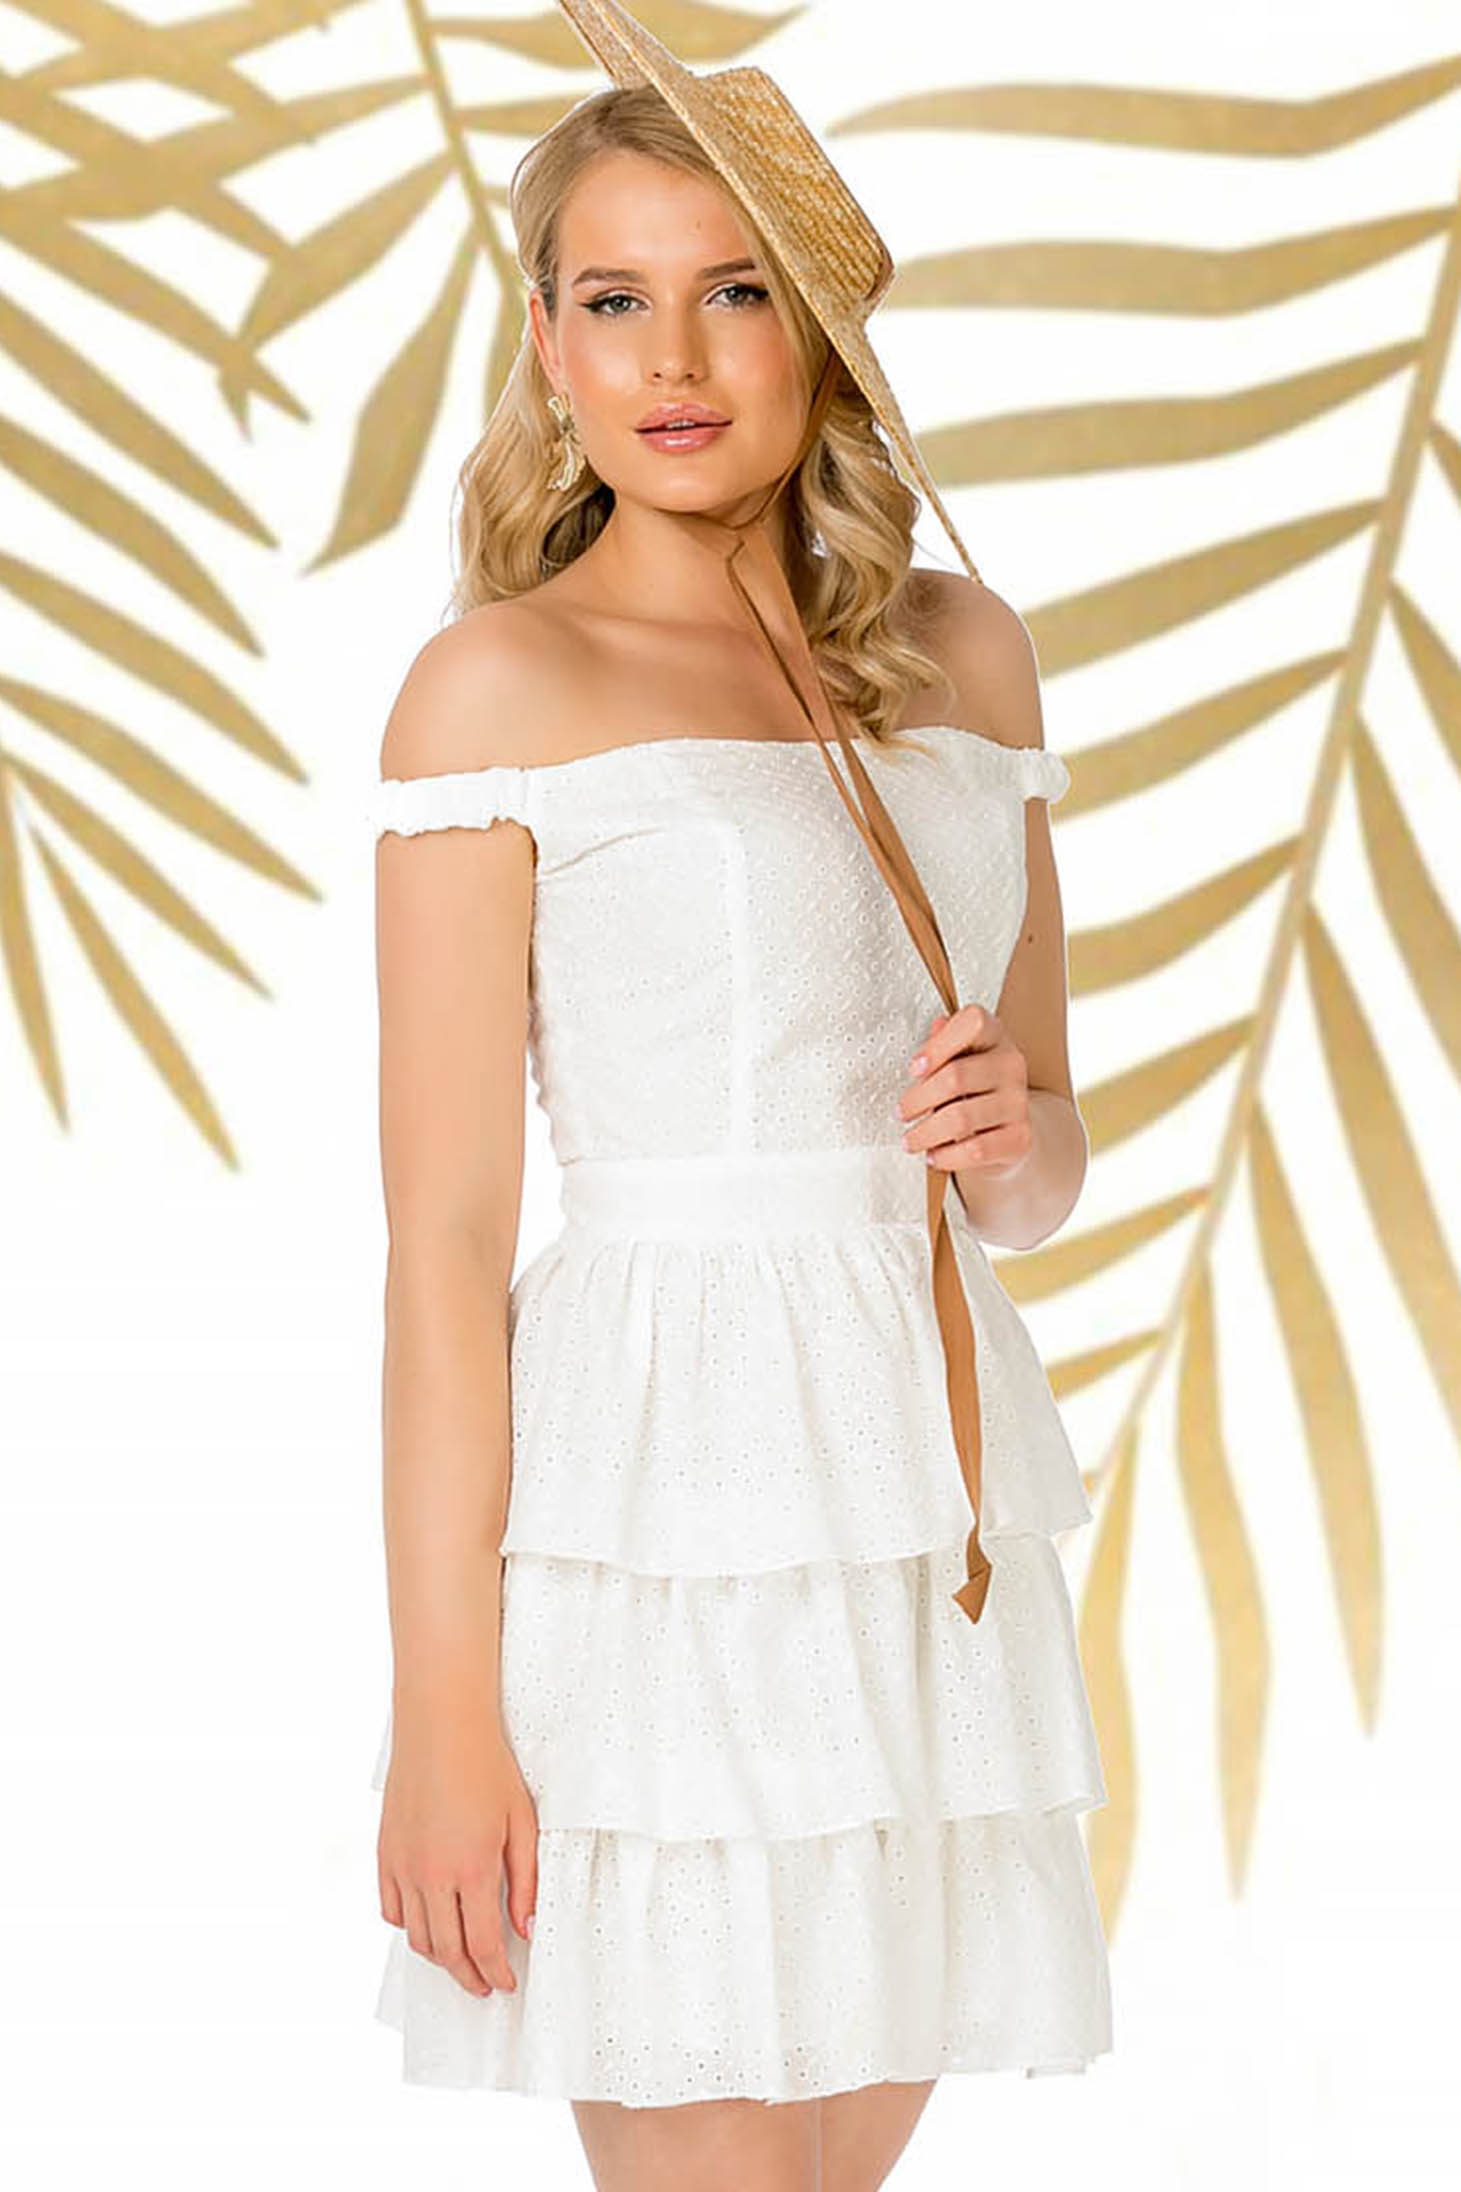 White dress daily cloche off-shoulder cotton with ruffles at the buttom of the dress